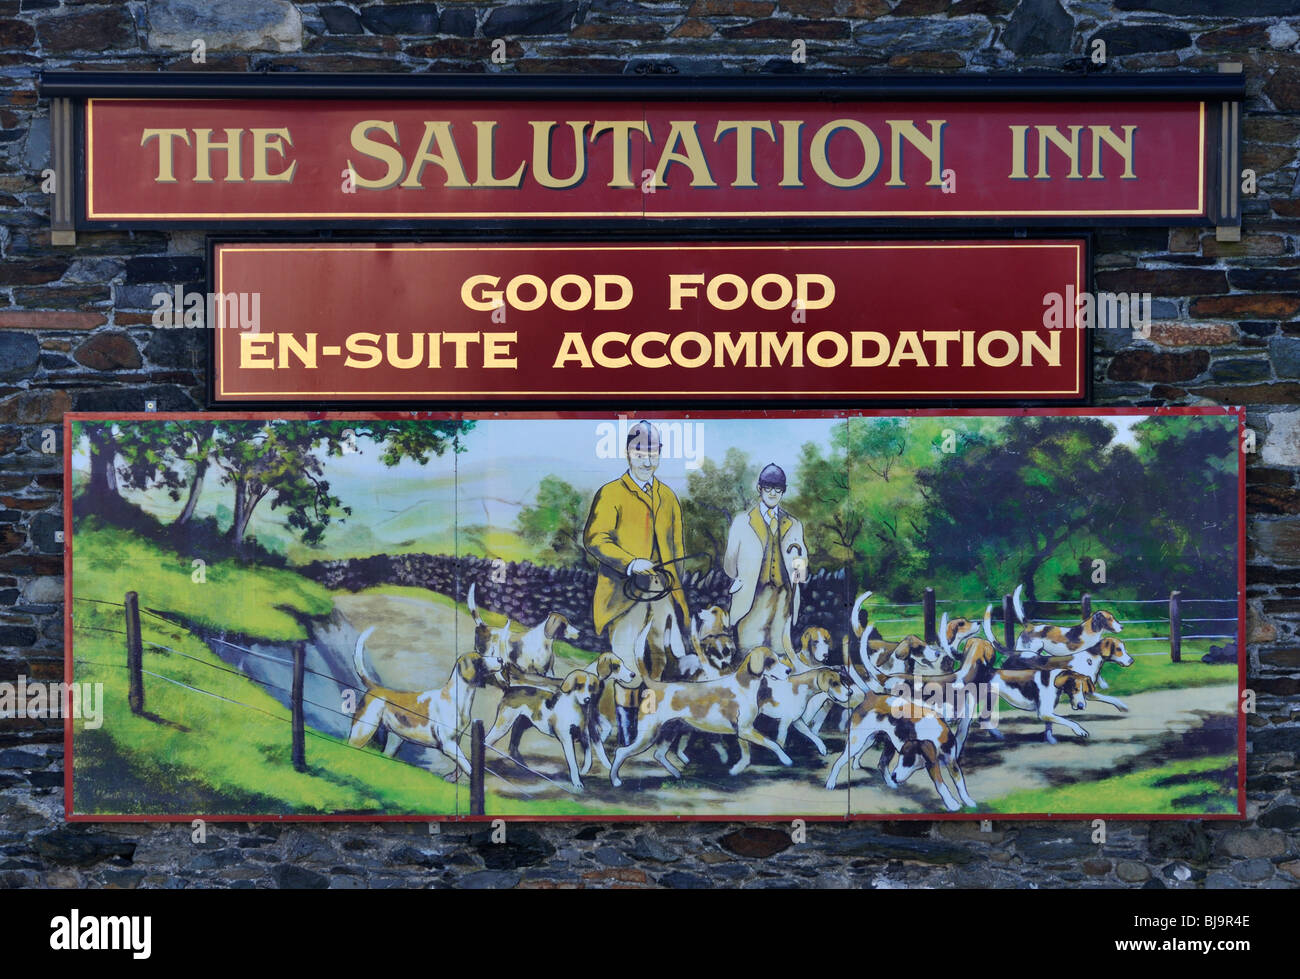 Inn sgn, The Salutation Inn. Threlkeld, Lake District National Park, Cumbria, England, United Kingdom, Europe. - Stock Image